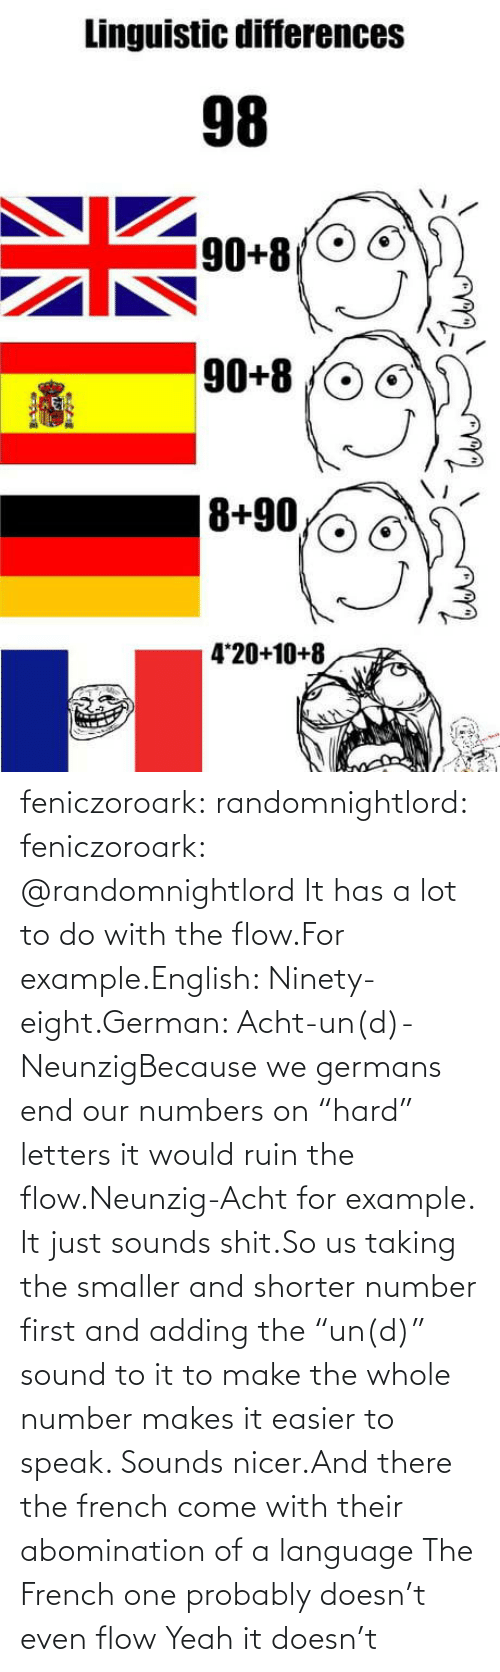 """Tumblr, Yeah, and Blog: feniczoroark:  randomnightlord:  feniczoroark:  @randomnightlord    It has a lot to do with the flow.For example.English: Ninety-eight.German: Acht-un(d)-NeunzigBecause we germans end our numbers on """"hard"""" letters it would ruin the flow.Neunzig-Acht for example. It just sounds shit.So us taking the smaller and shorter number first and adding the """"un(d)"""" sound to it to make the whole number makes it easier to speak. Sounds nicer.And there the french come with their abomination of a language    The French one probably doesn't even flow   Yeah it doesn't"""